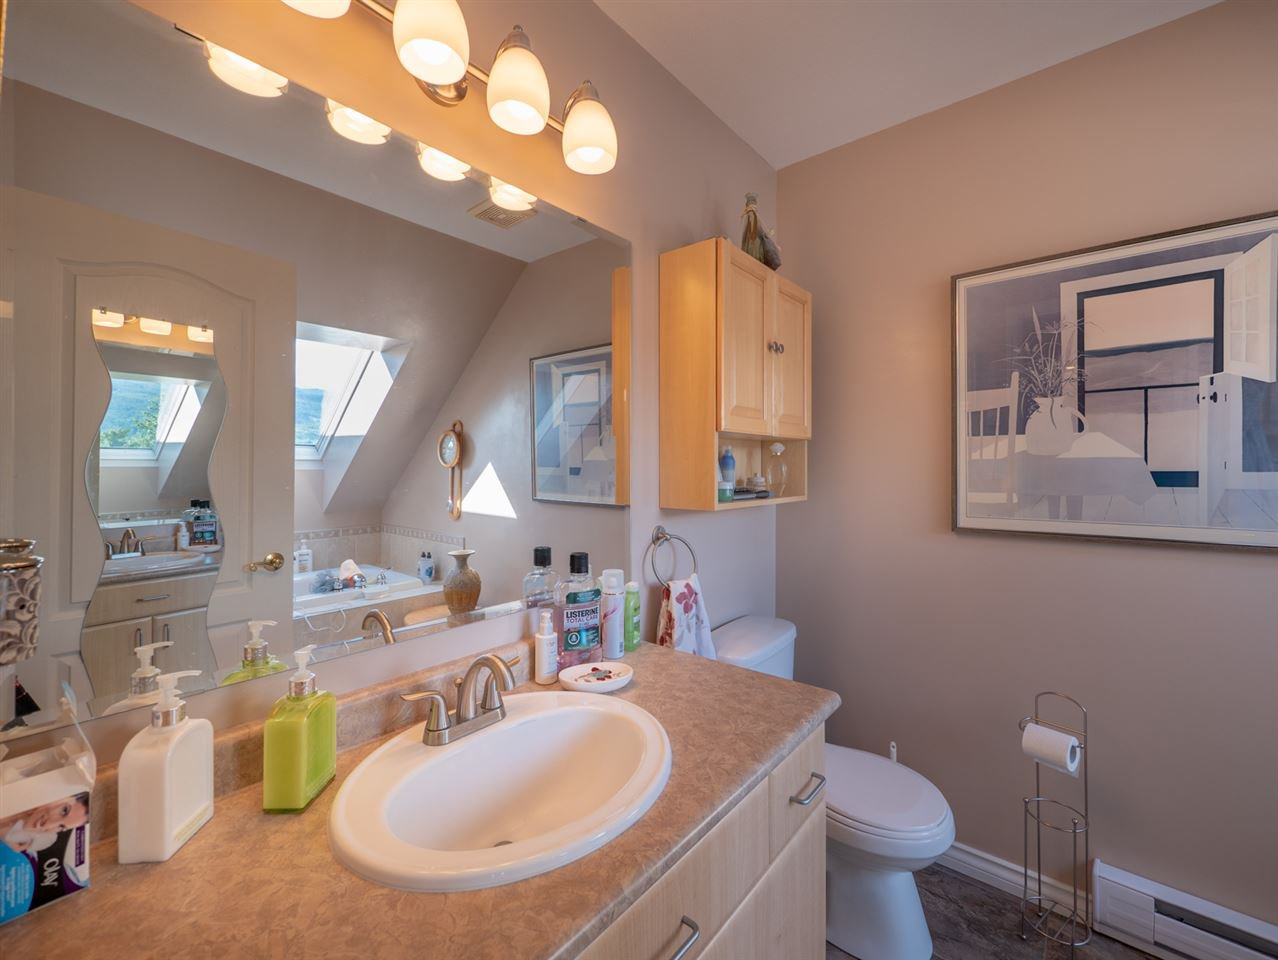 """Photo 7: Photos: 6148 POISE ISLAND Drive in Sechelt: Sechelt District House for sale in """"POISE ISLAND"""" (Sunshine Coast)  : MLS®# R2426642"""